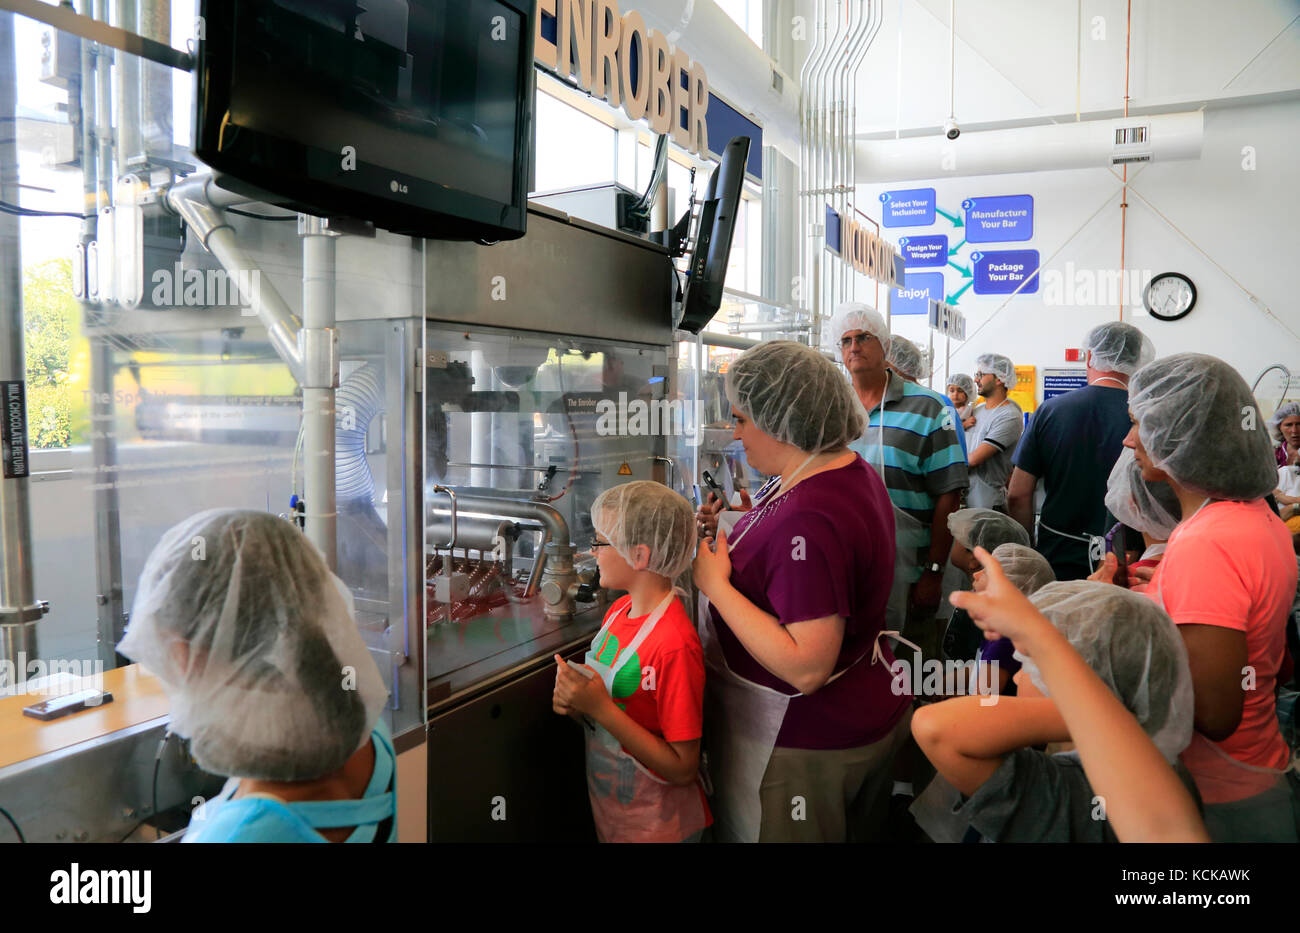 Visitors in Creat-your-own candy bar in Hershey's Chocolate World.Hershey.Derry Township.Pennsylvania.USA - Stock Image